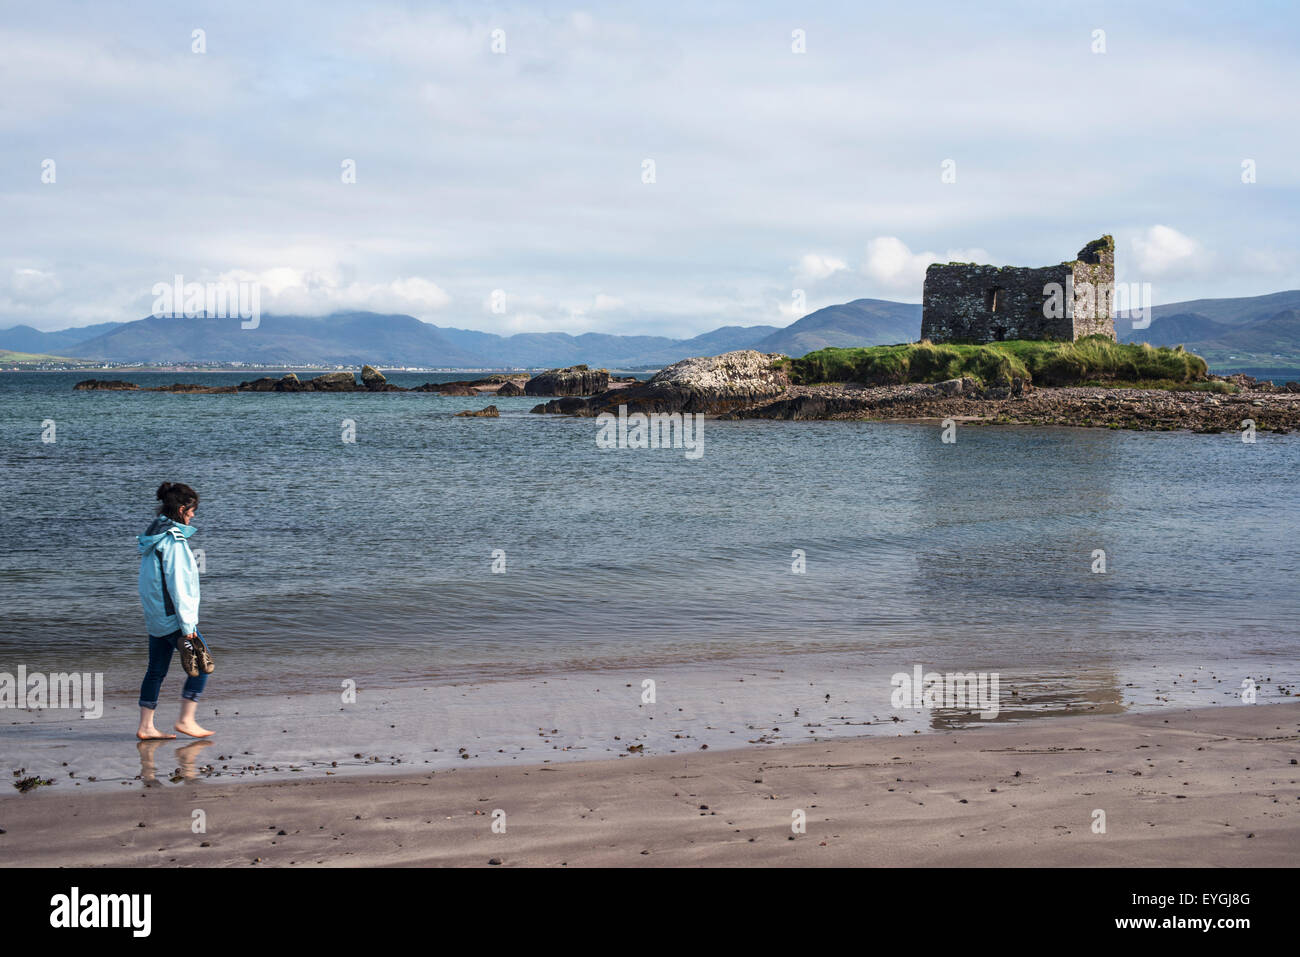 Woman walking on beach with Ballinskelligs Castle in background; County Kerry, Ireland, UK - Stock Image